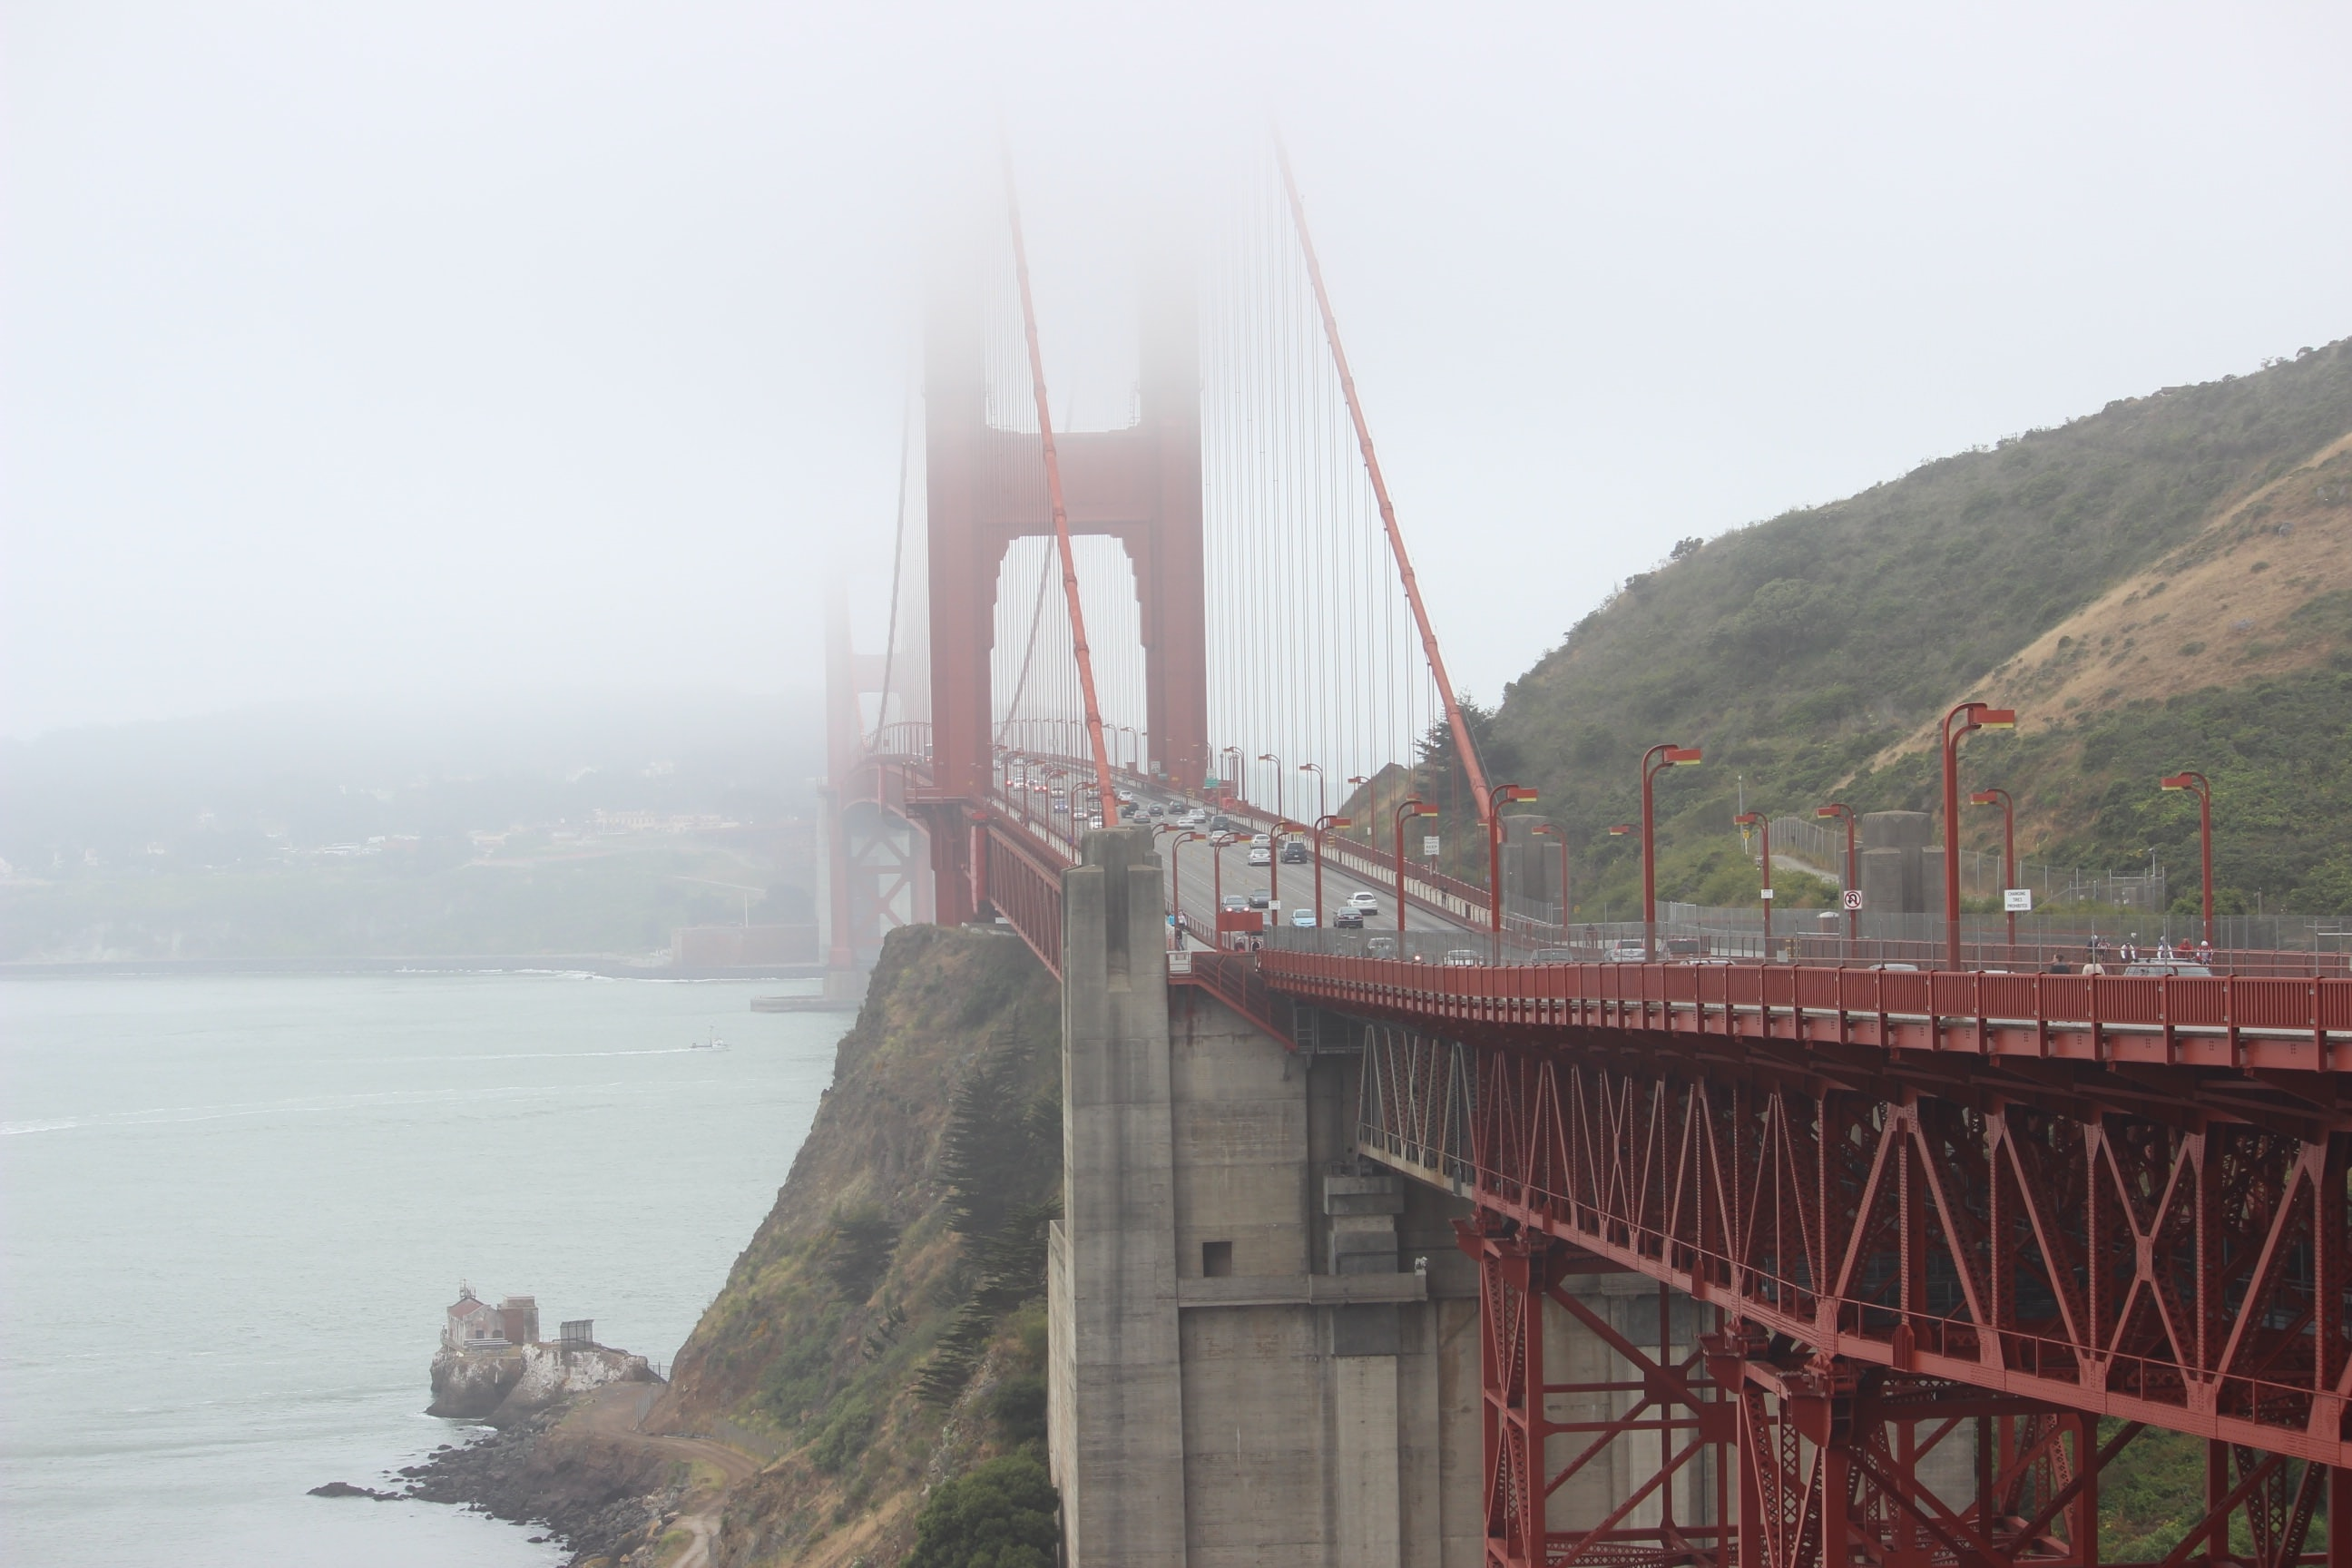 Long shot of misty Golden Gate Bridge in San Francisco with busy daytime traffic